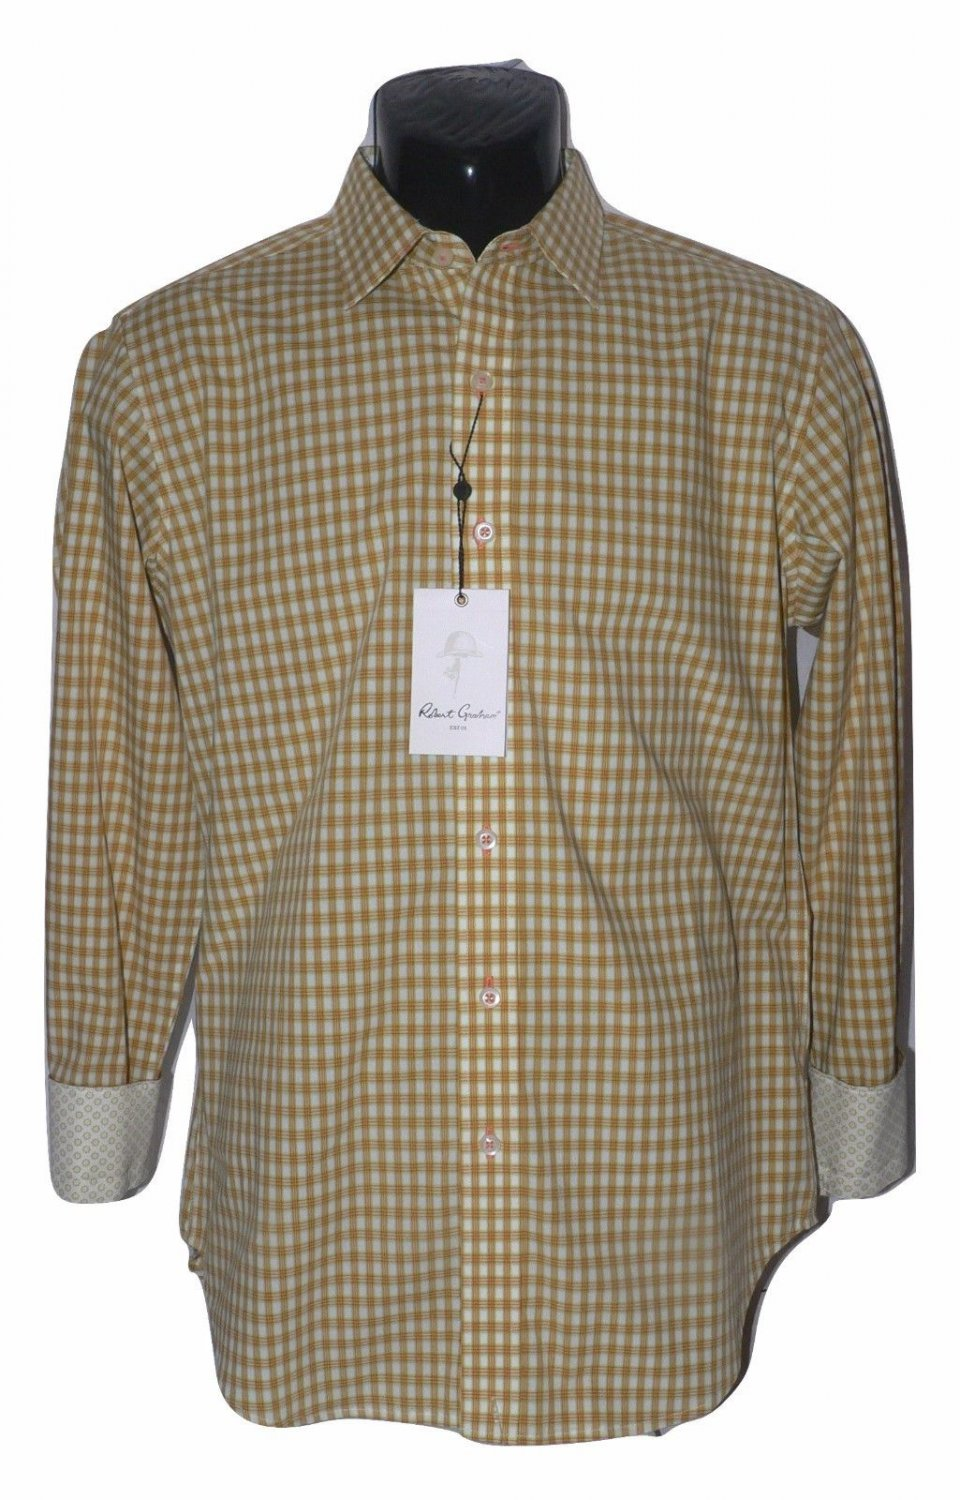 NWT ROBERT GRAHAM SM shirt gold white with contrast cuffs designer Bodowyer